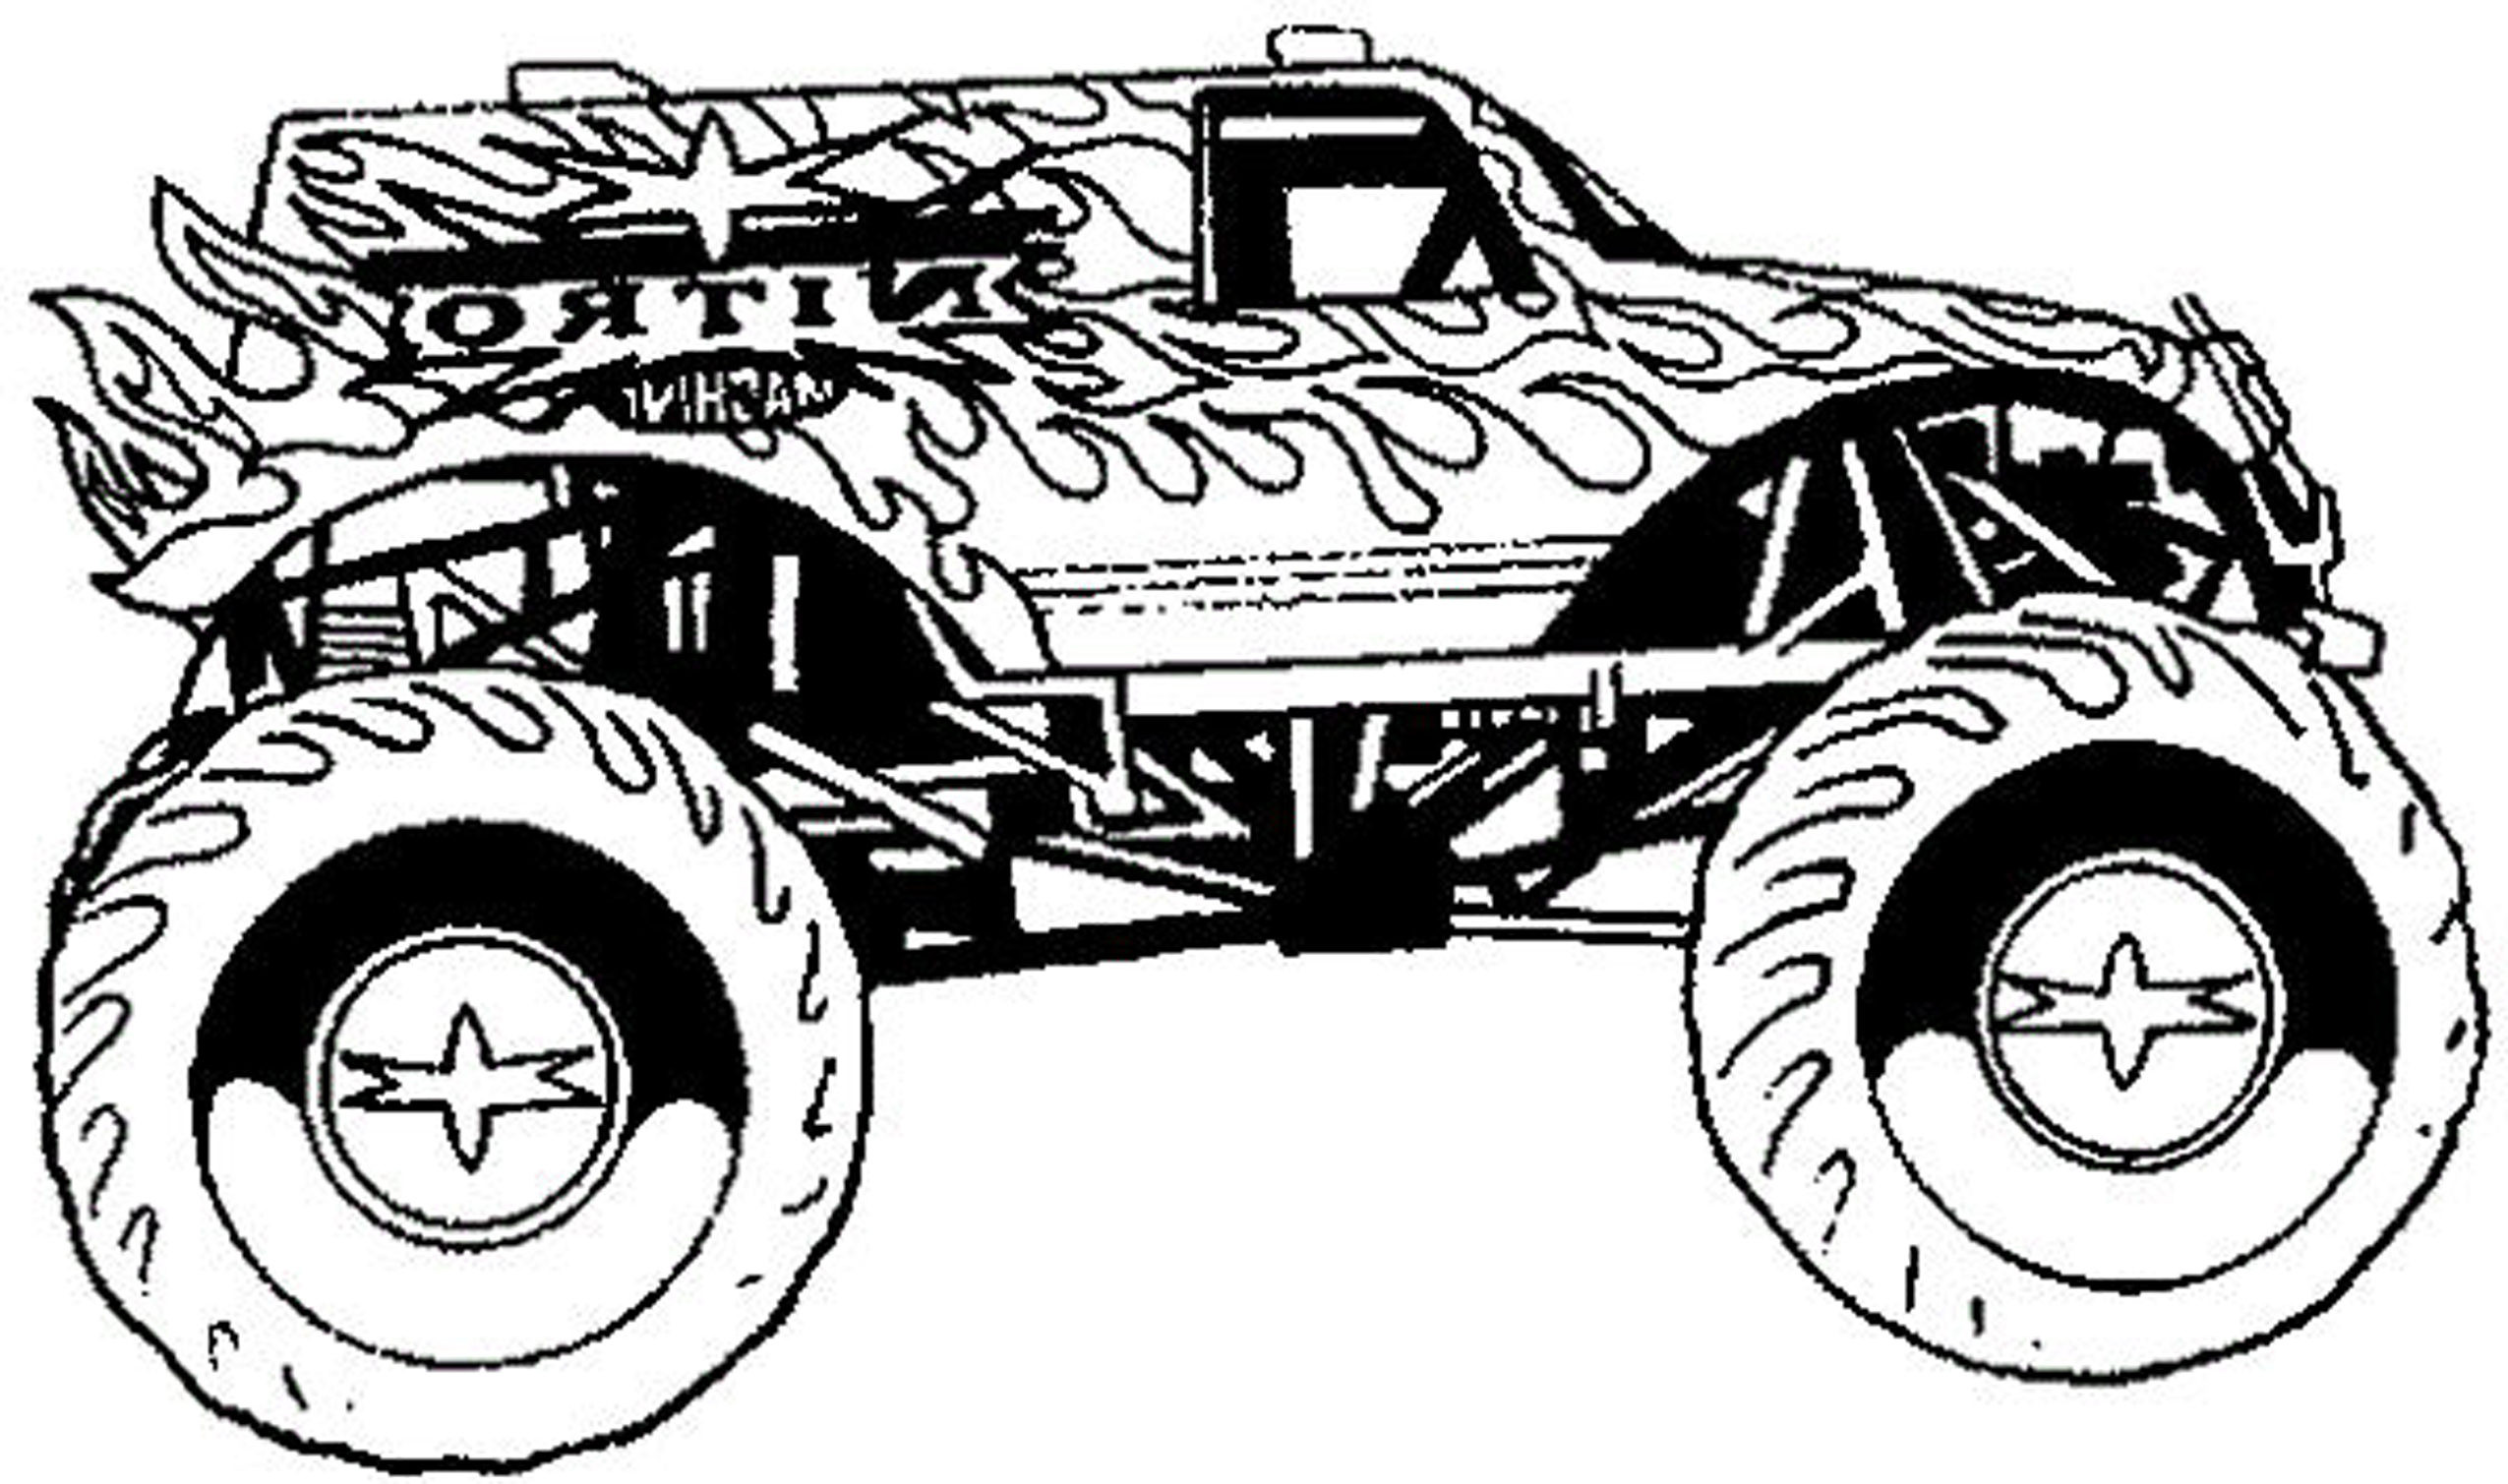 Coloring Sheets For Boys Monster Truck  Cool Coloring Pages For Boys Monster Truck Have Coloring